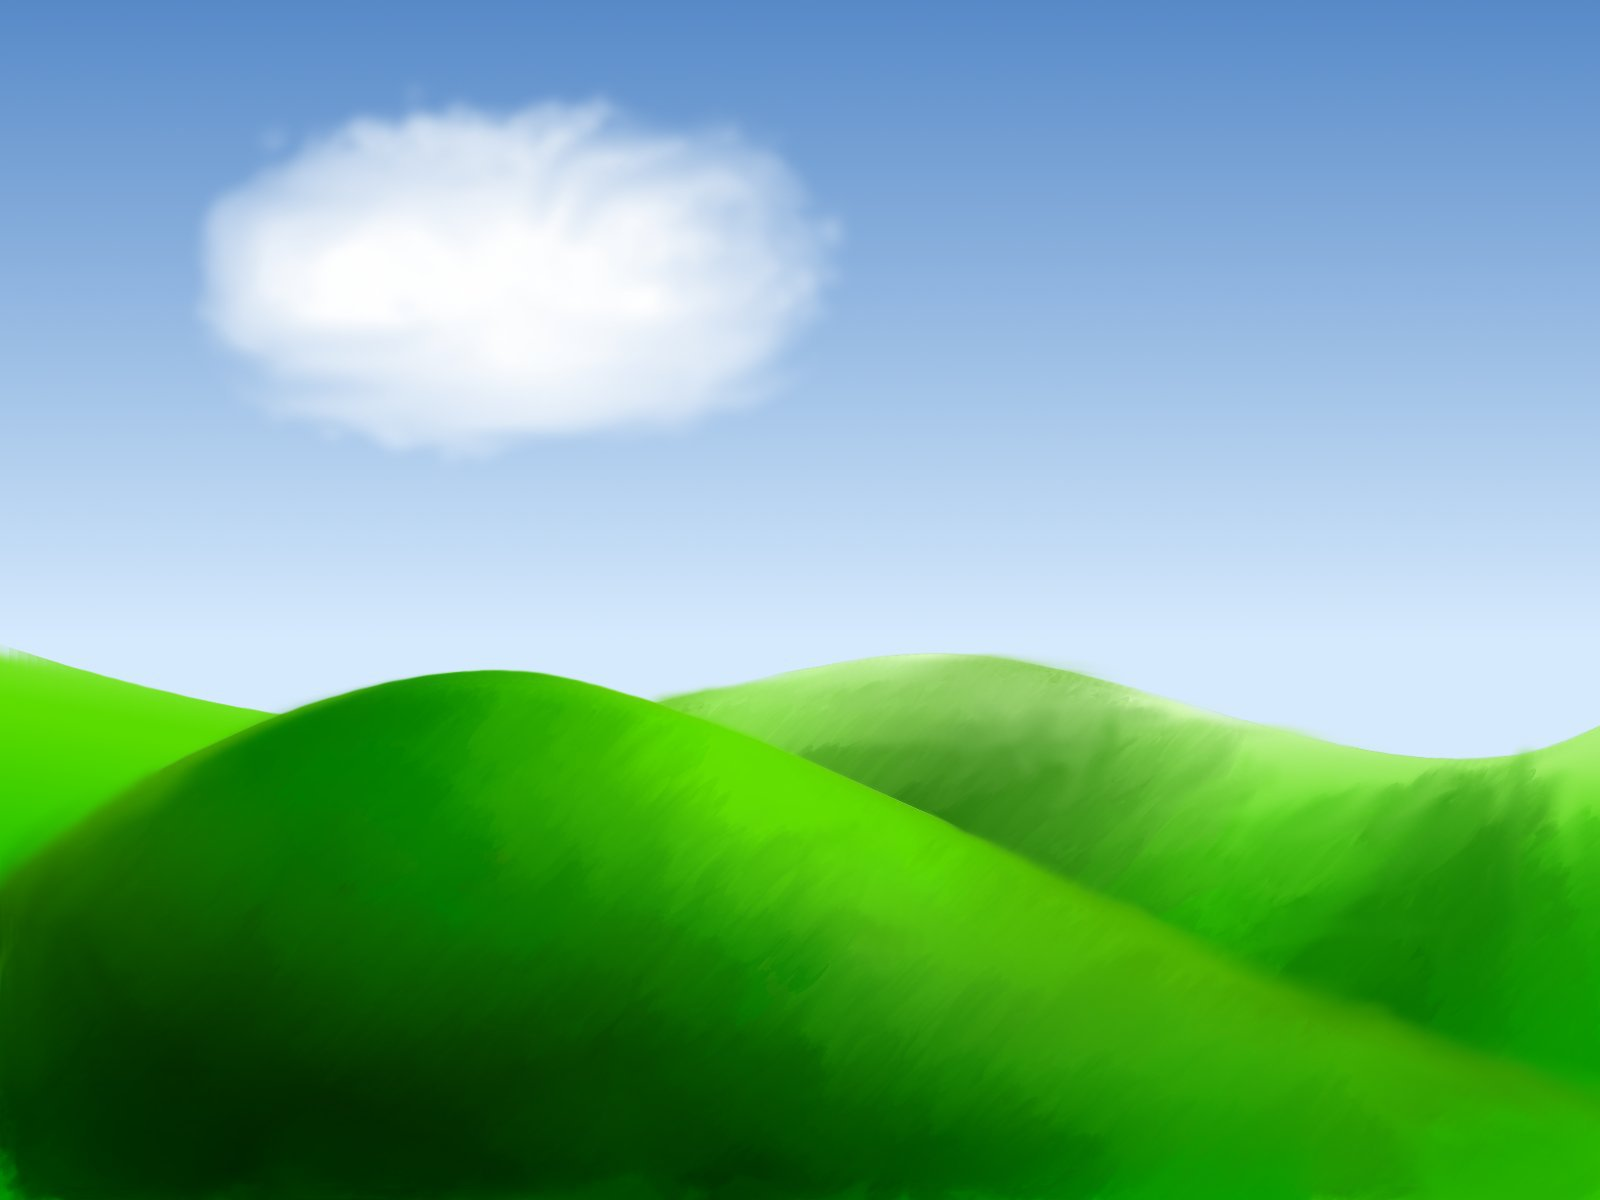 Hills clipart - Clipground